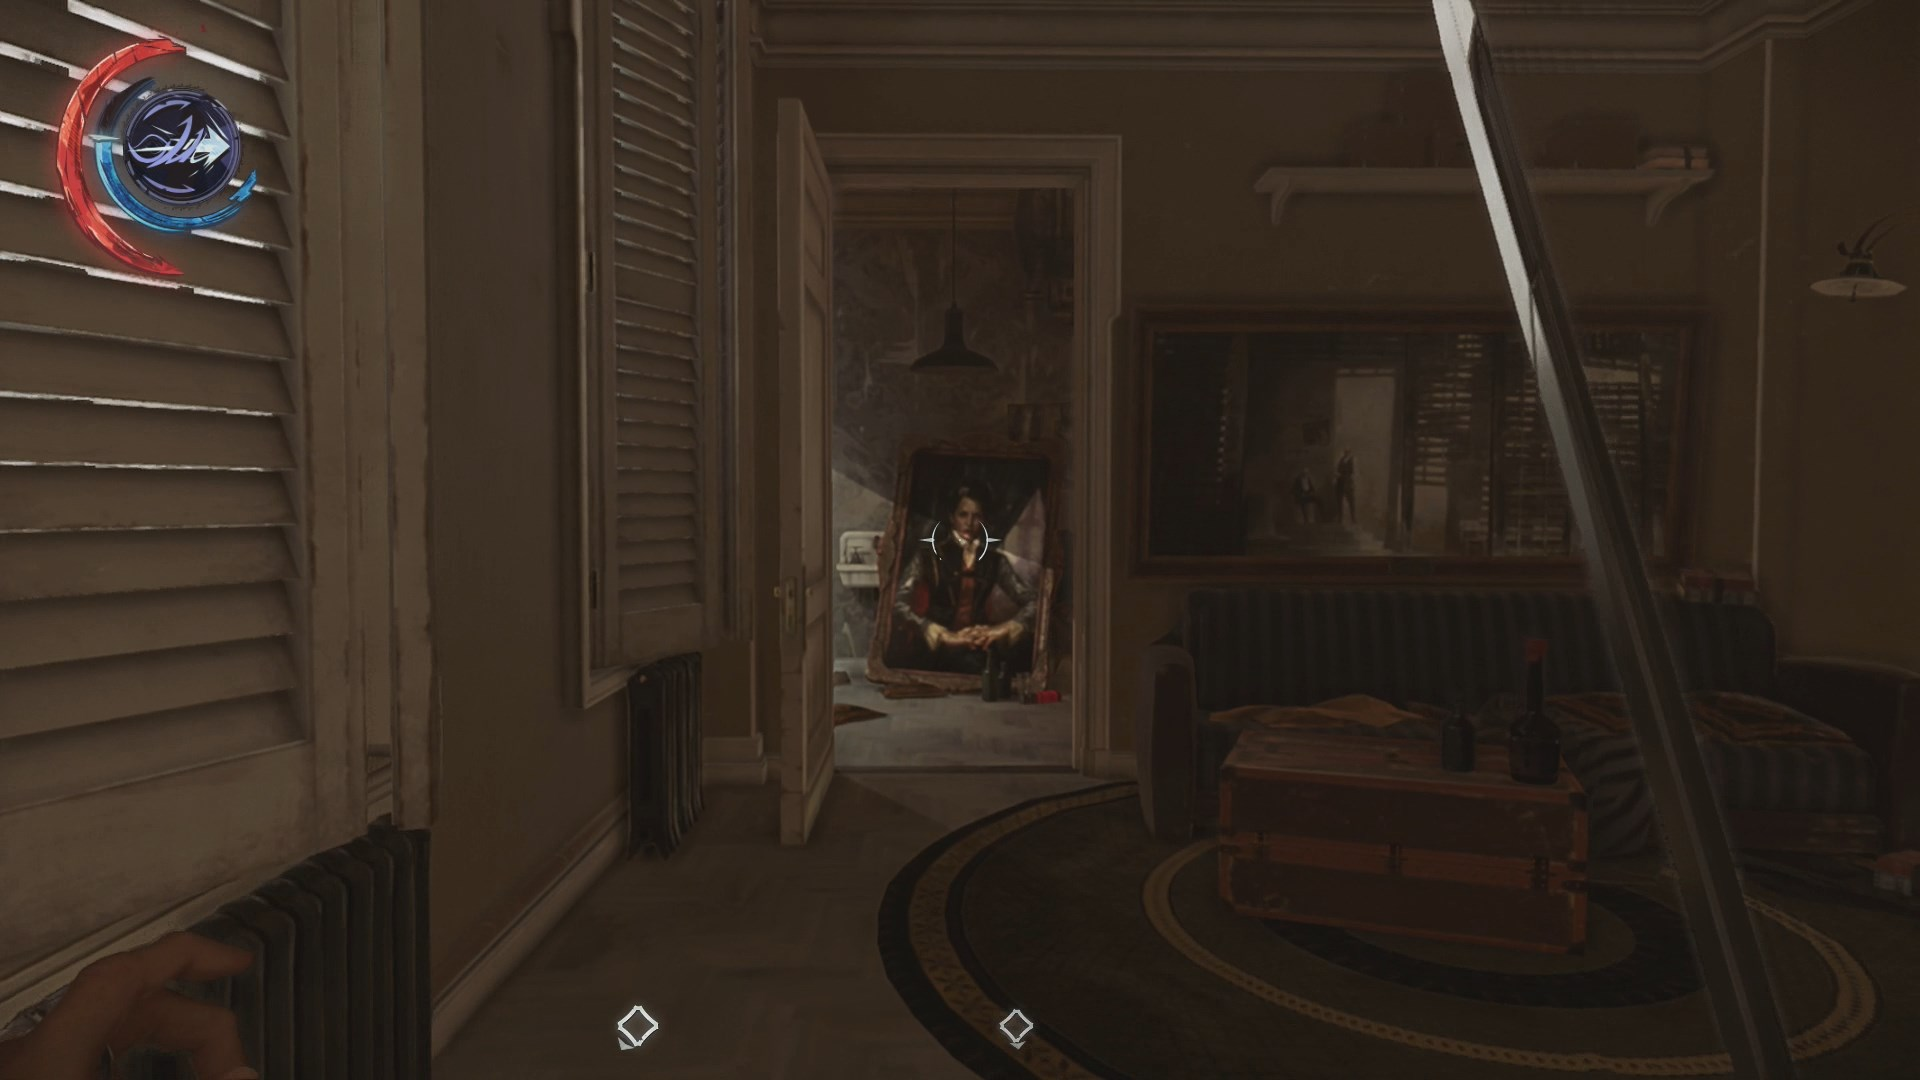 Dishonored 2 Mission 6 Painting #2